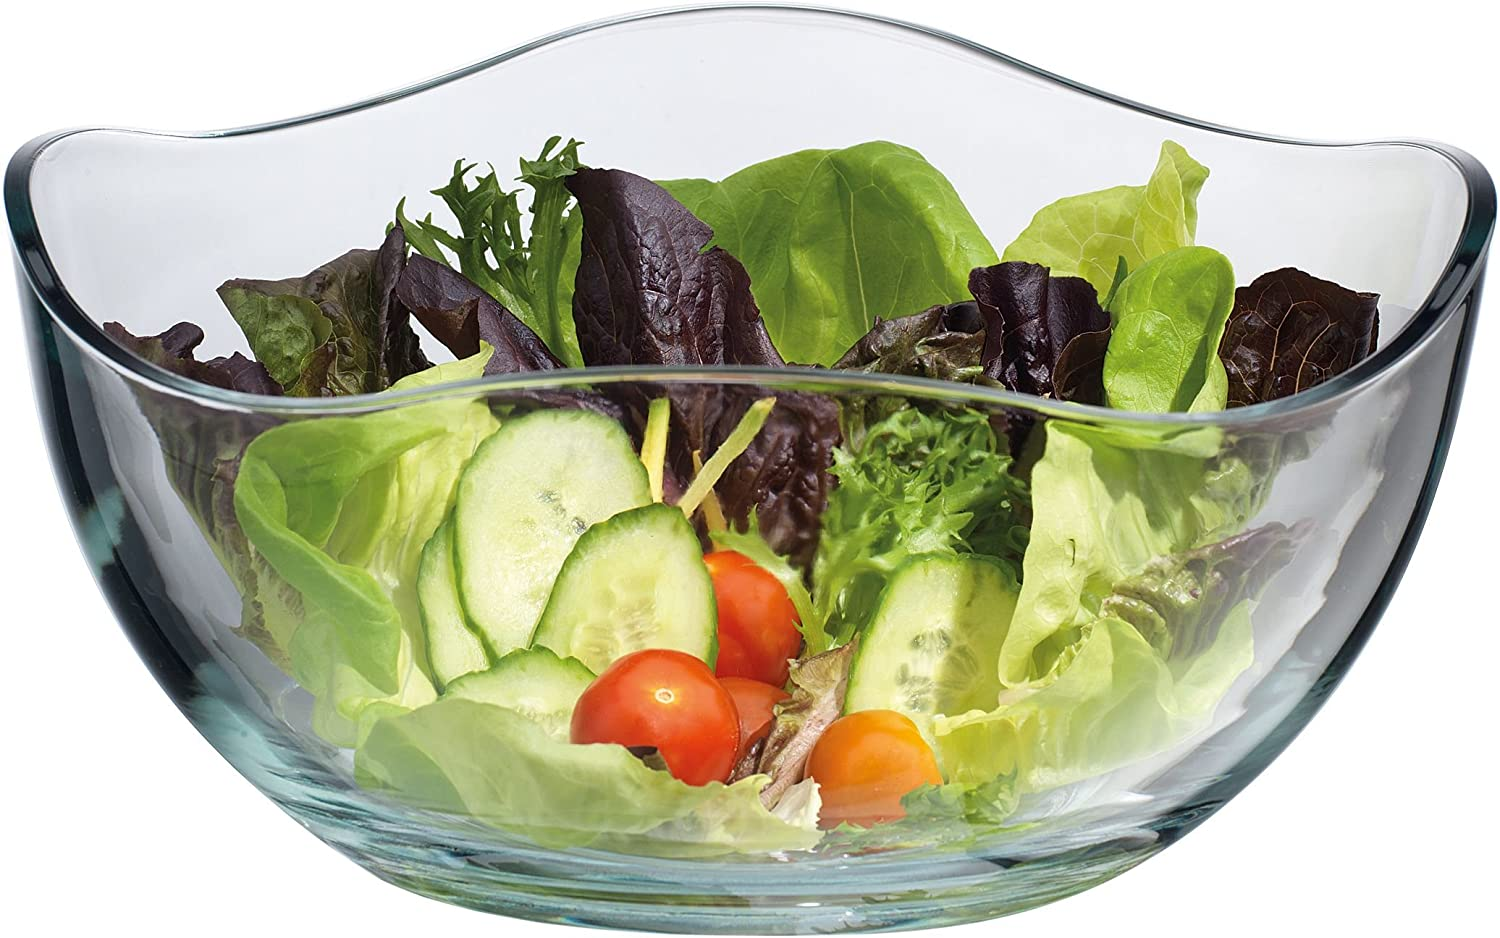 Large Clear Glass Wavy Salad Bowl, Mixing Bowl, All Purpose Round Serving Bowl Le'raze